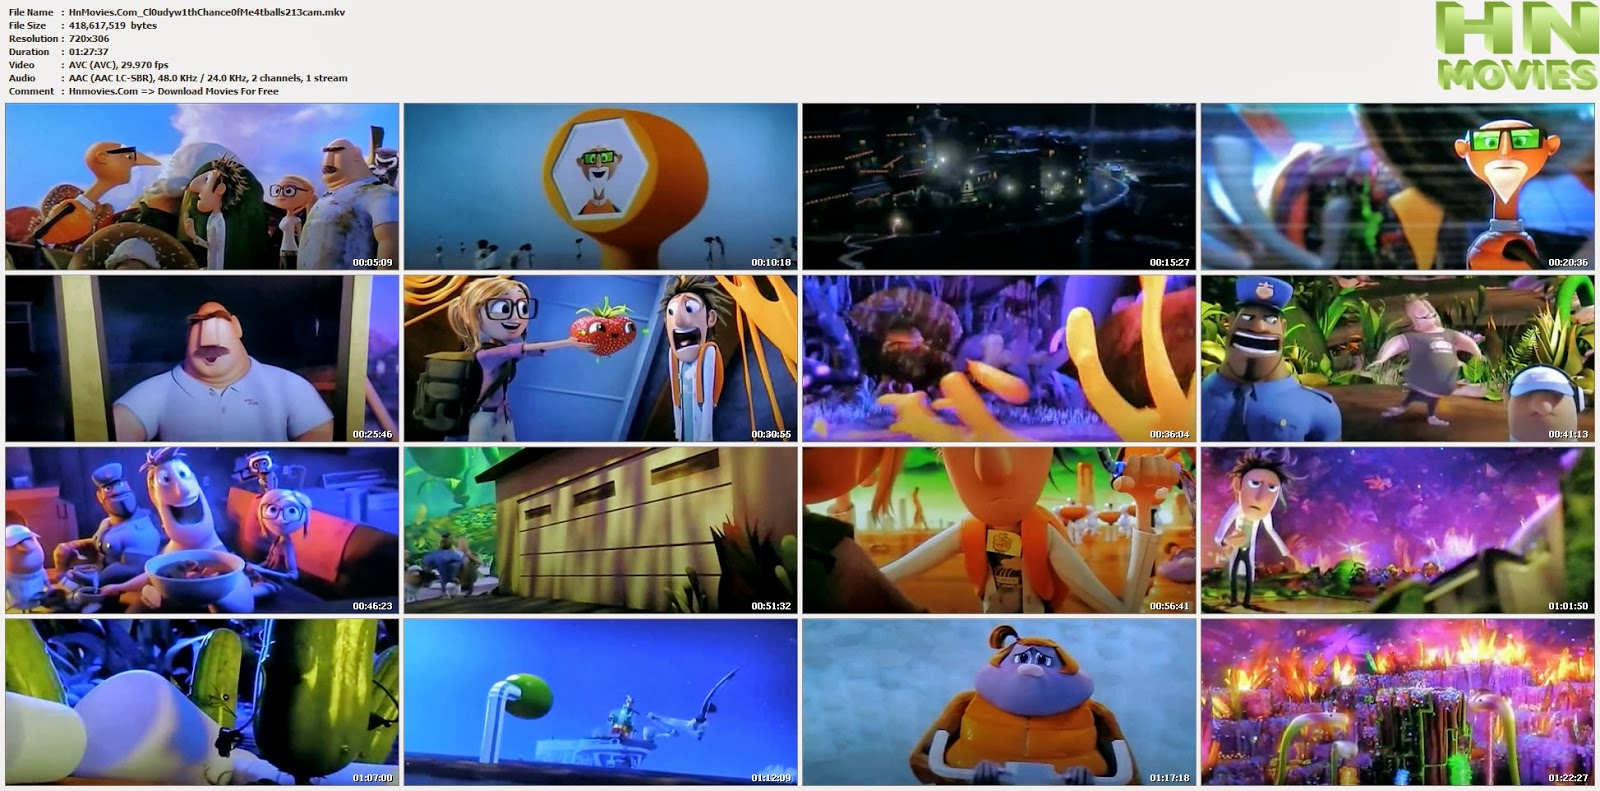 movie screenshot of Cloudy with a Chance of Meatballs 2 fdmovie.com